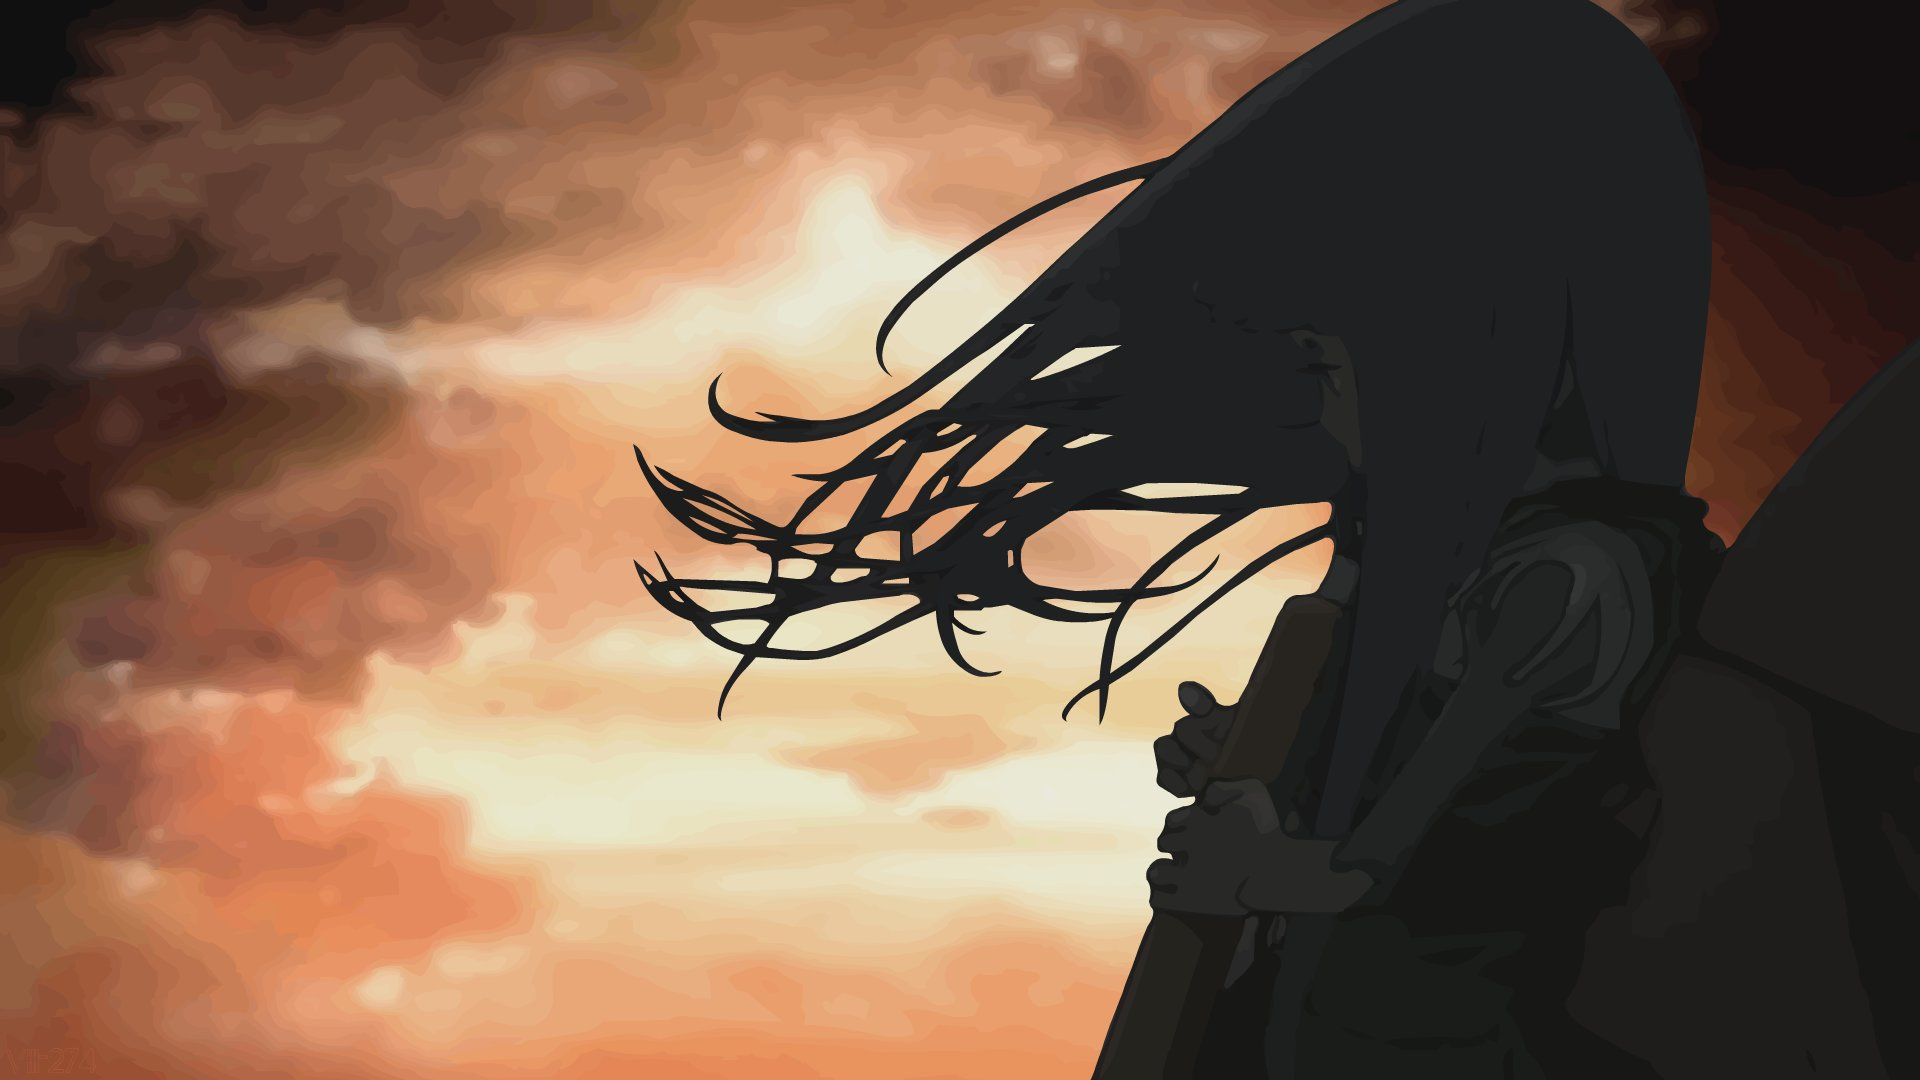 Free Ergo Proxy high quality wallpaper ID:156826 for hd 1080p desktop